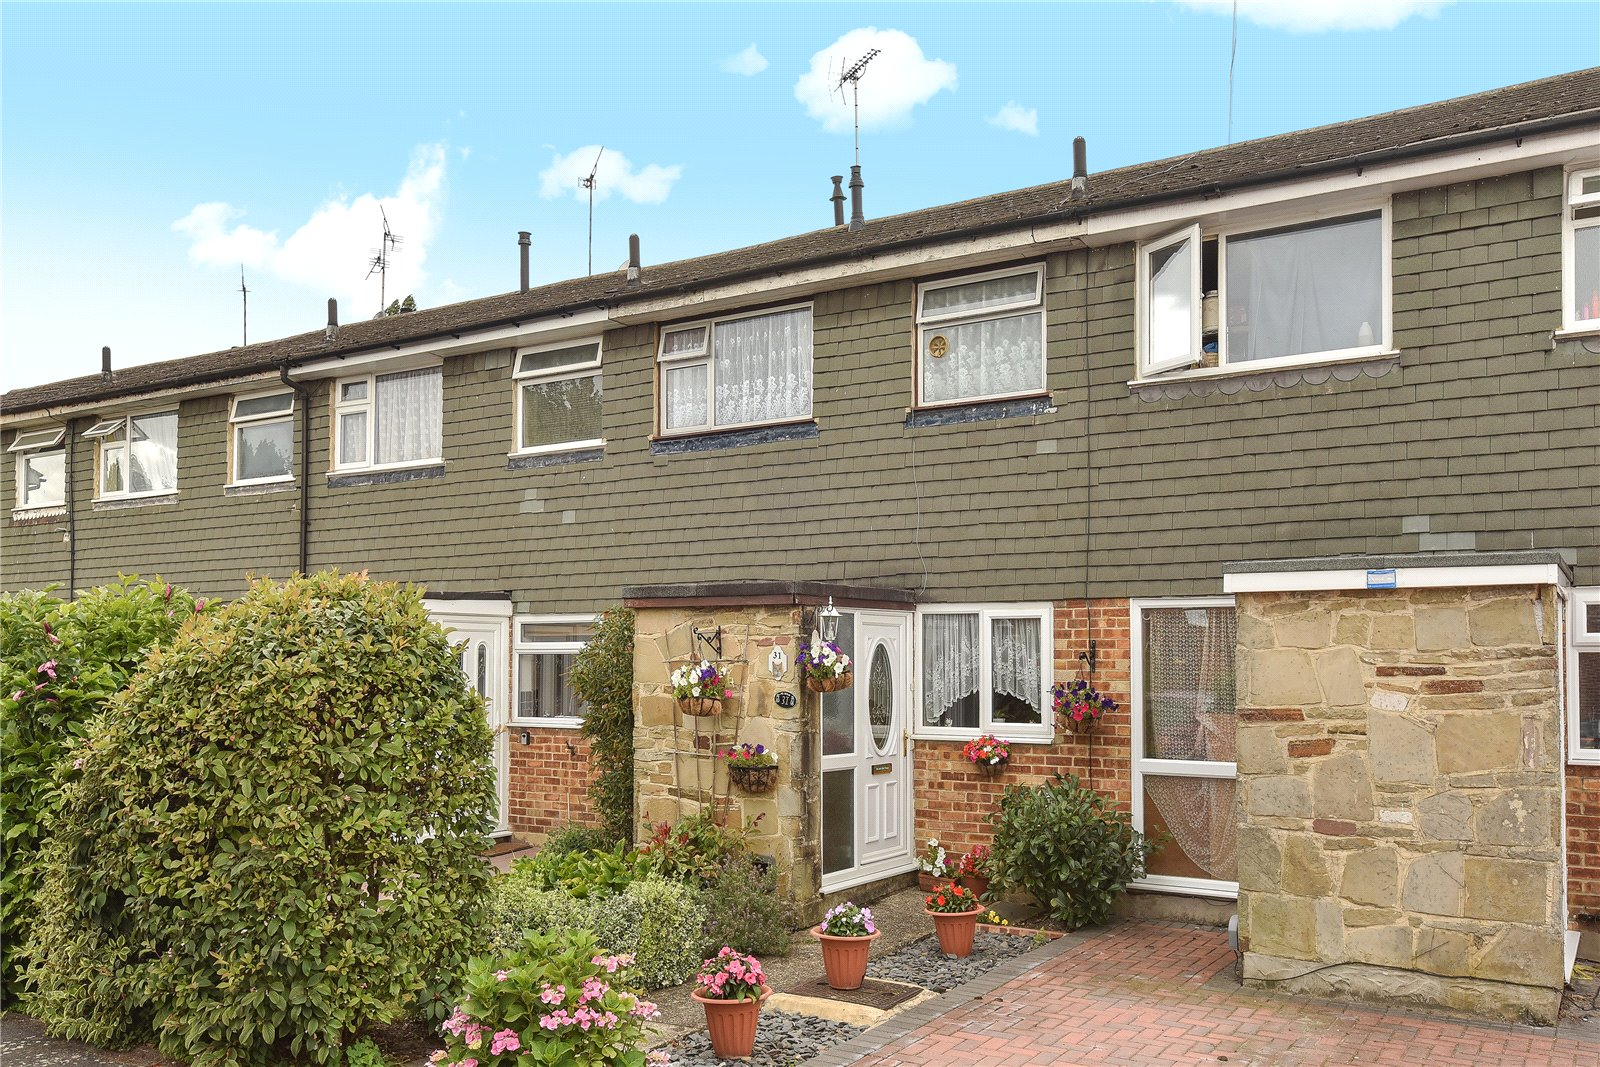 3 Bedrooms Terraced House for sale in Ryecroft Gardens, Blackwater, Camberley, Hampshire, GU17